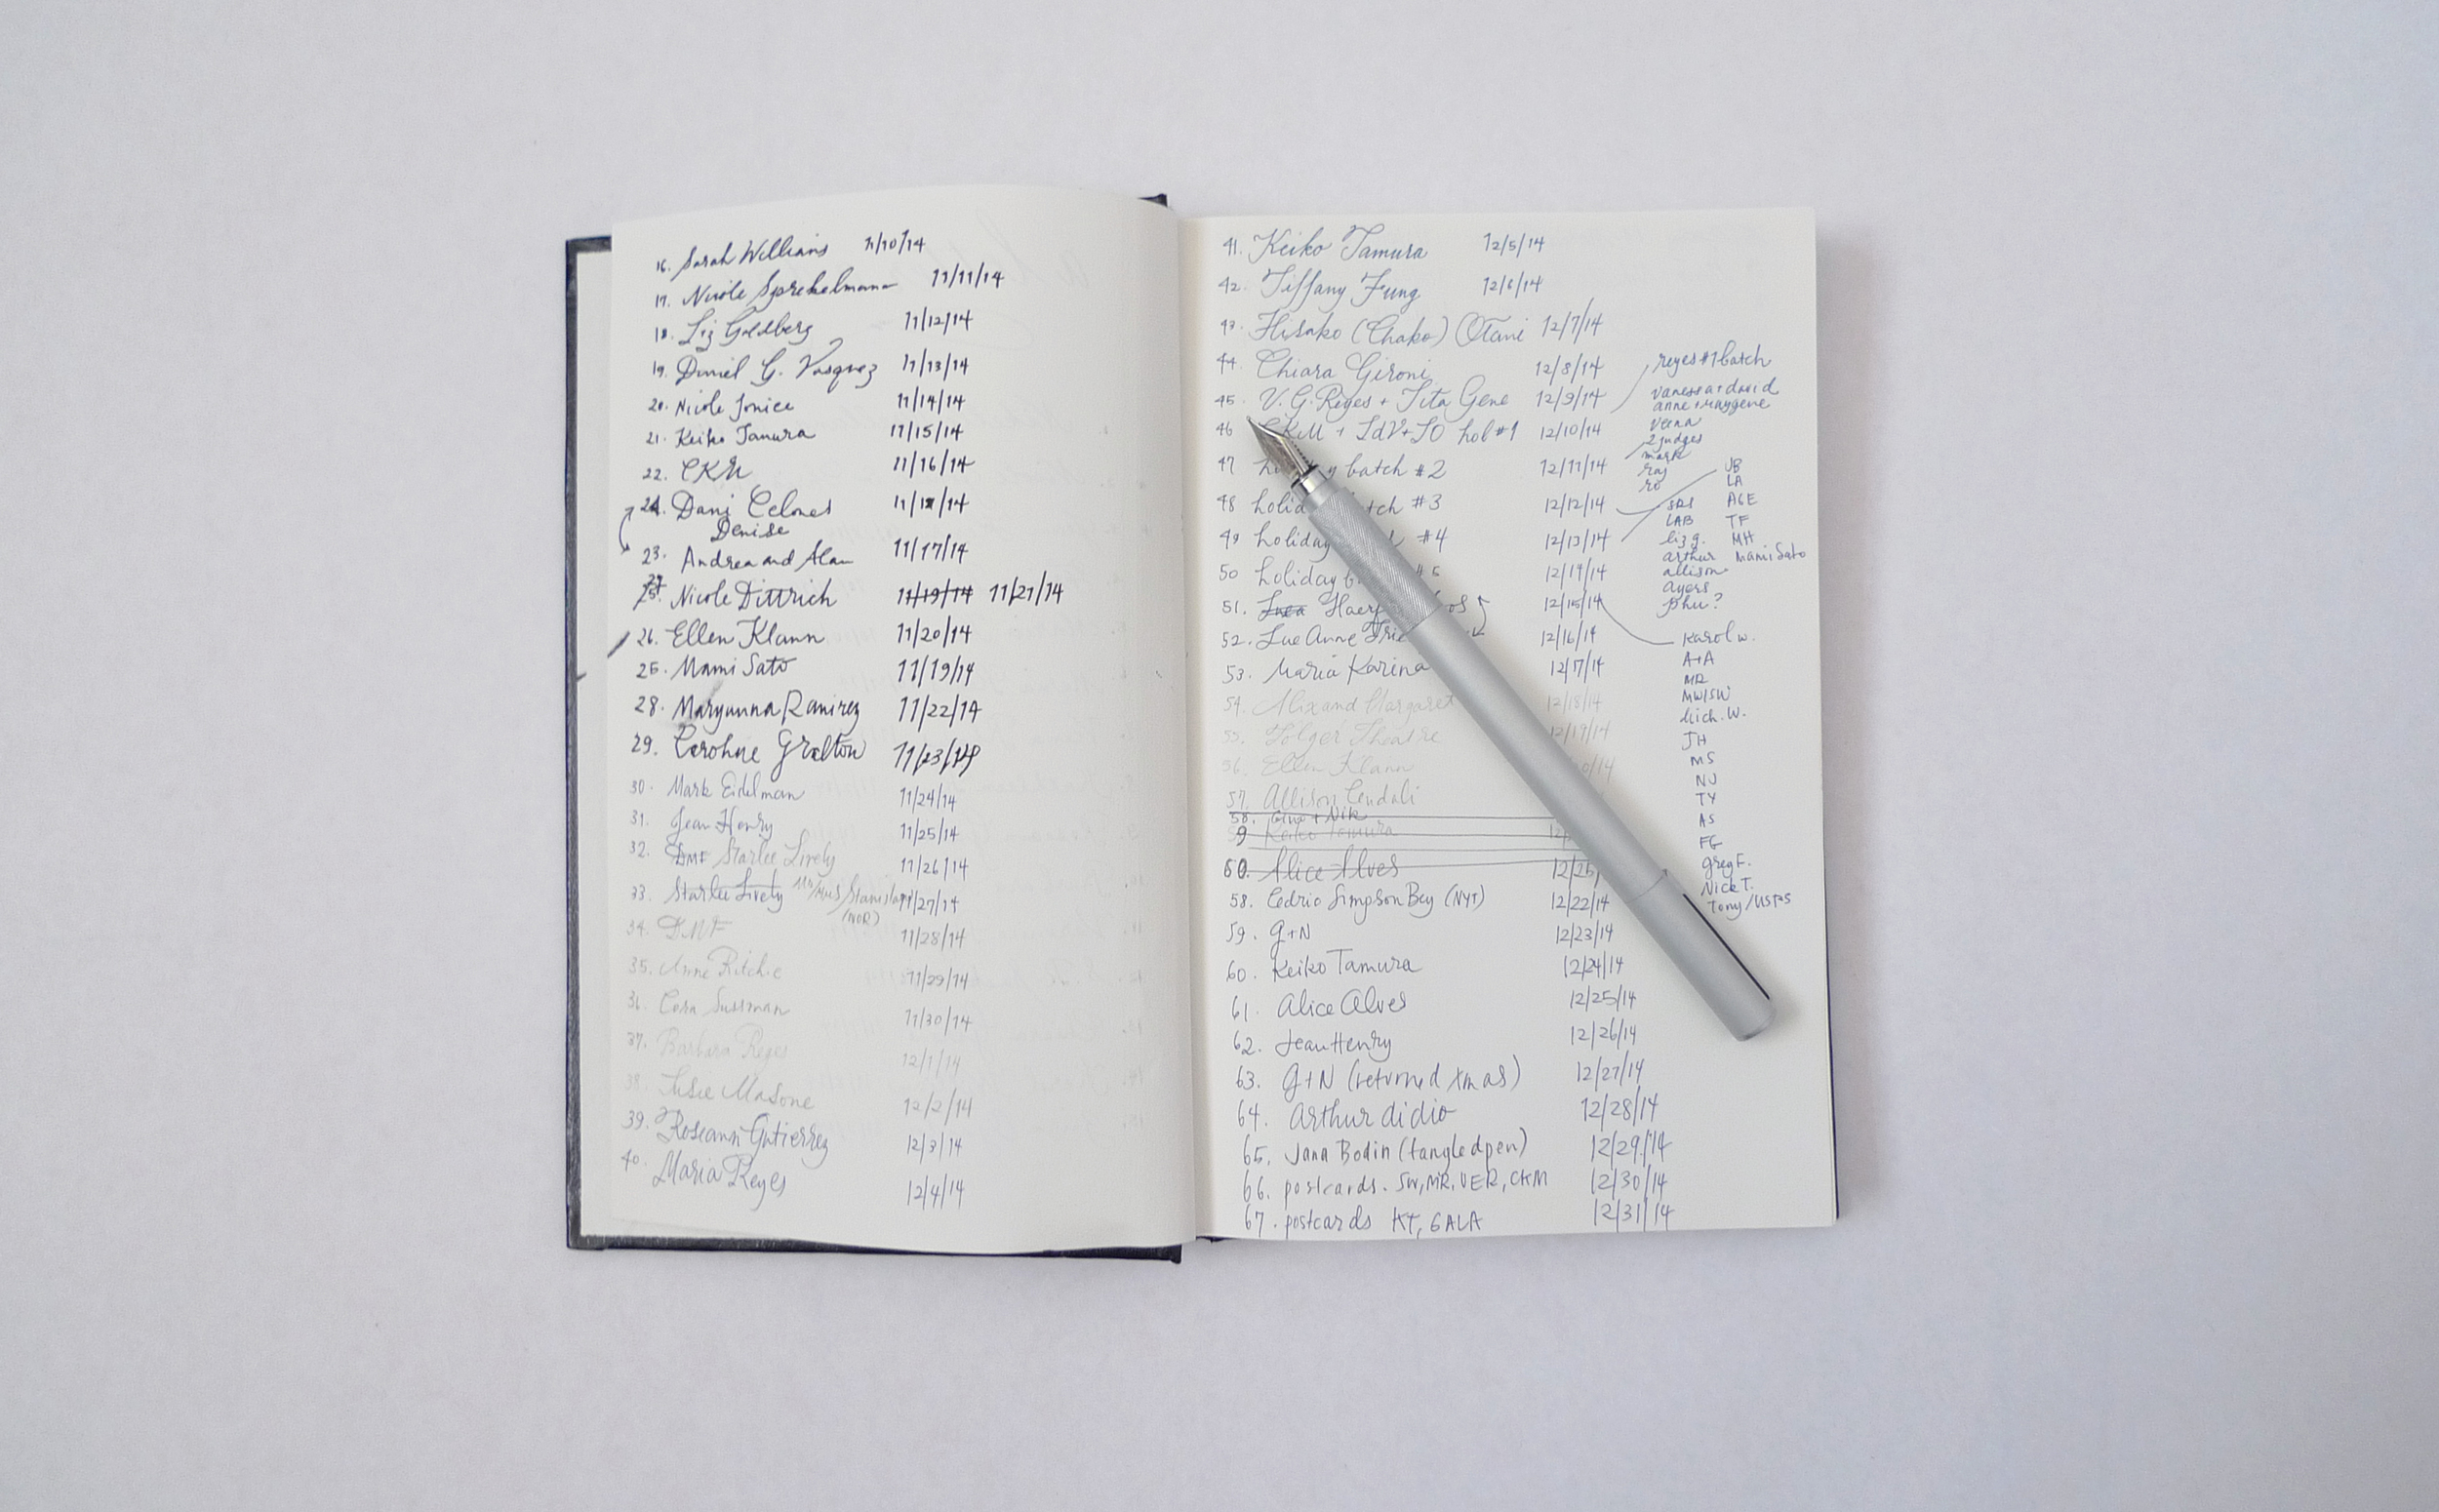 The second and third pages of my log, slowly becoming a mess.